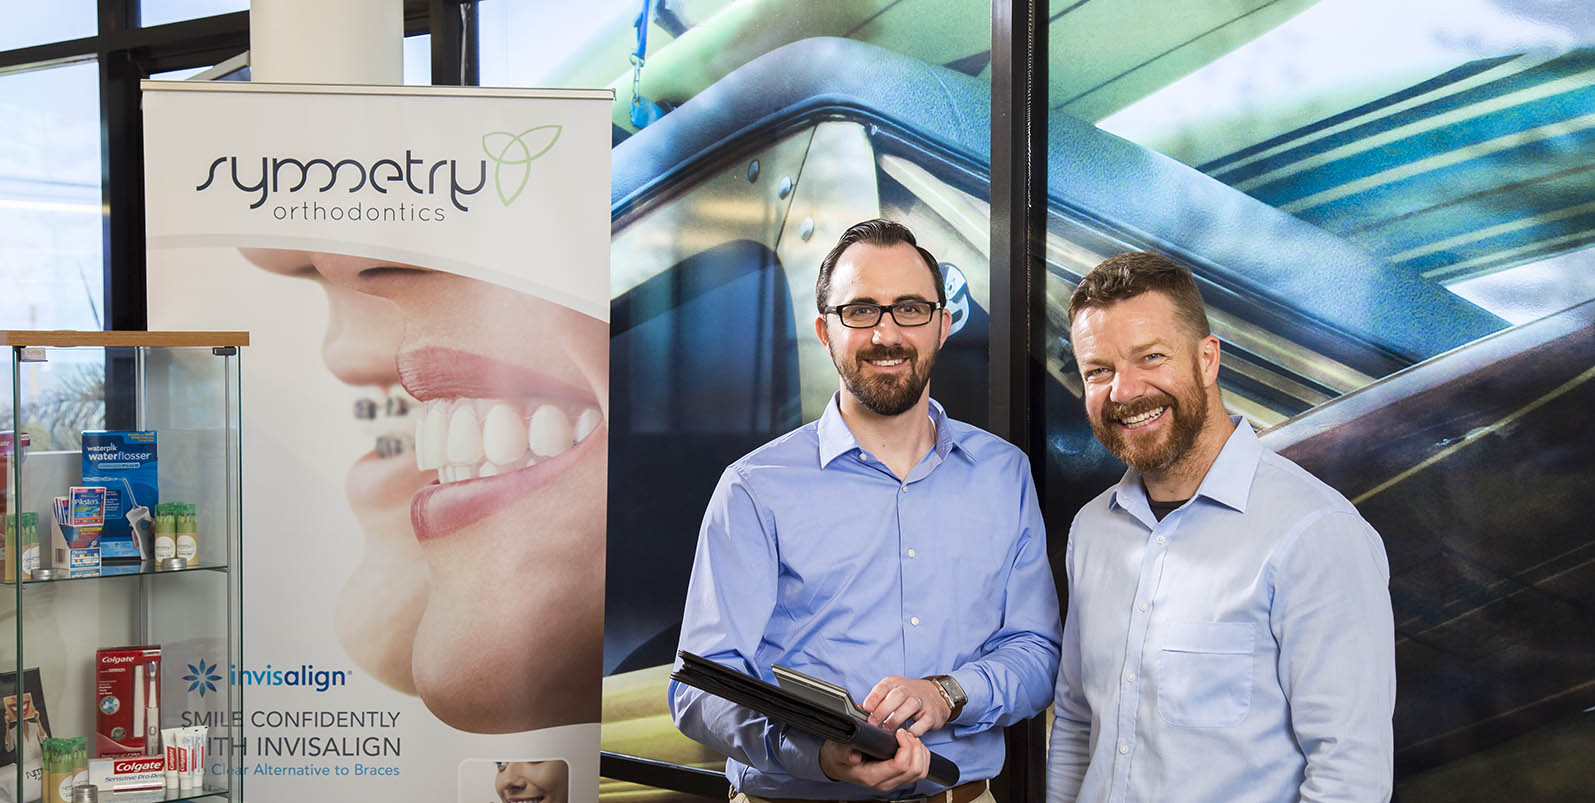 Accountant Jeremy Higgins with Jamie Galbraith standing in front of Symmetry Orthodontics banner